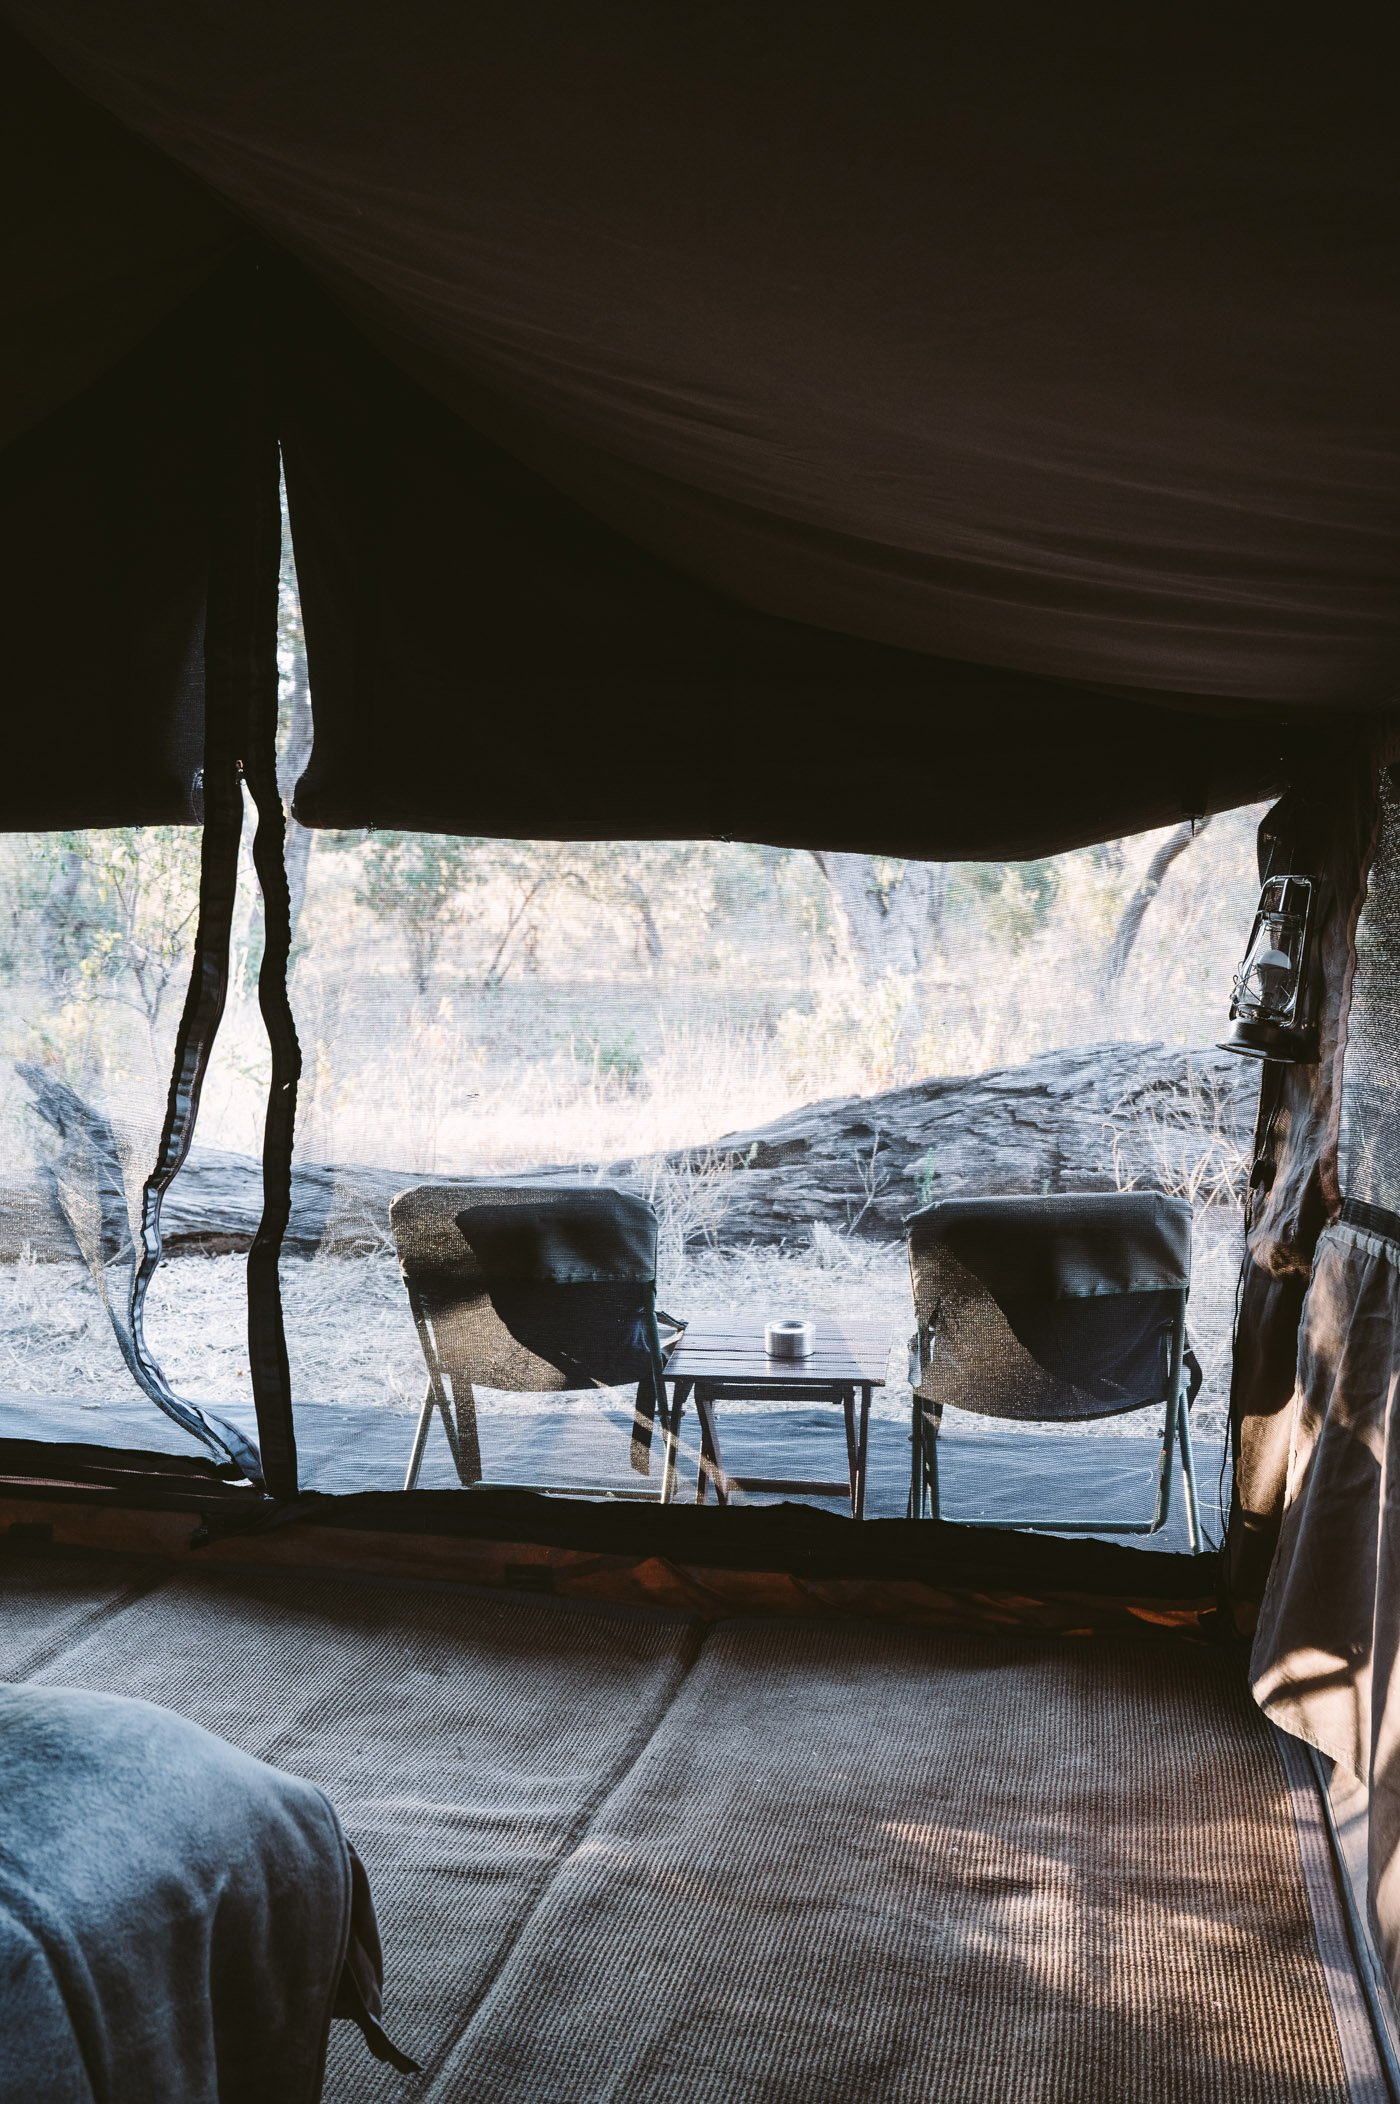 andBeyond Chobe under Canvas tent